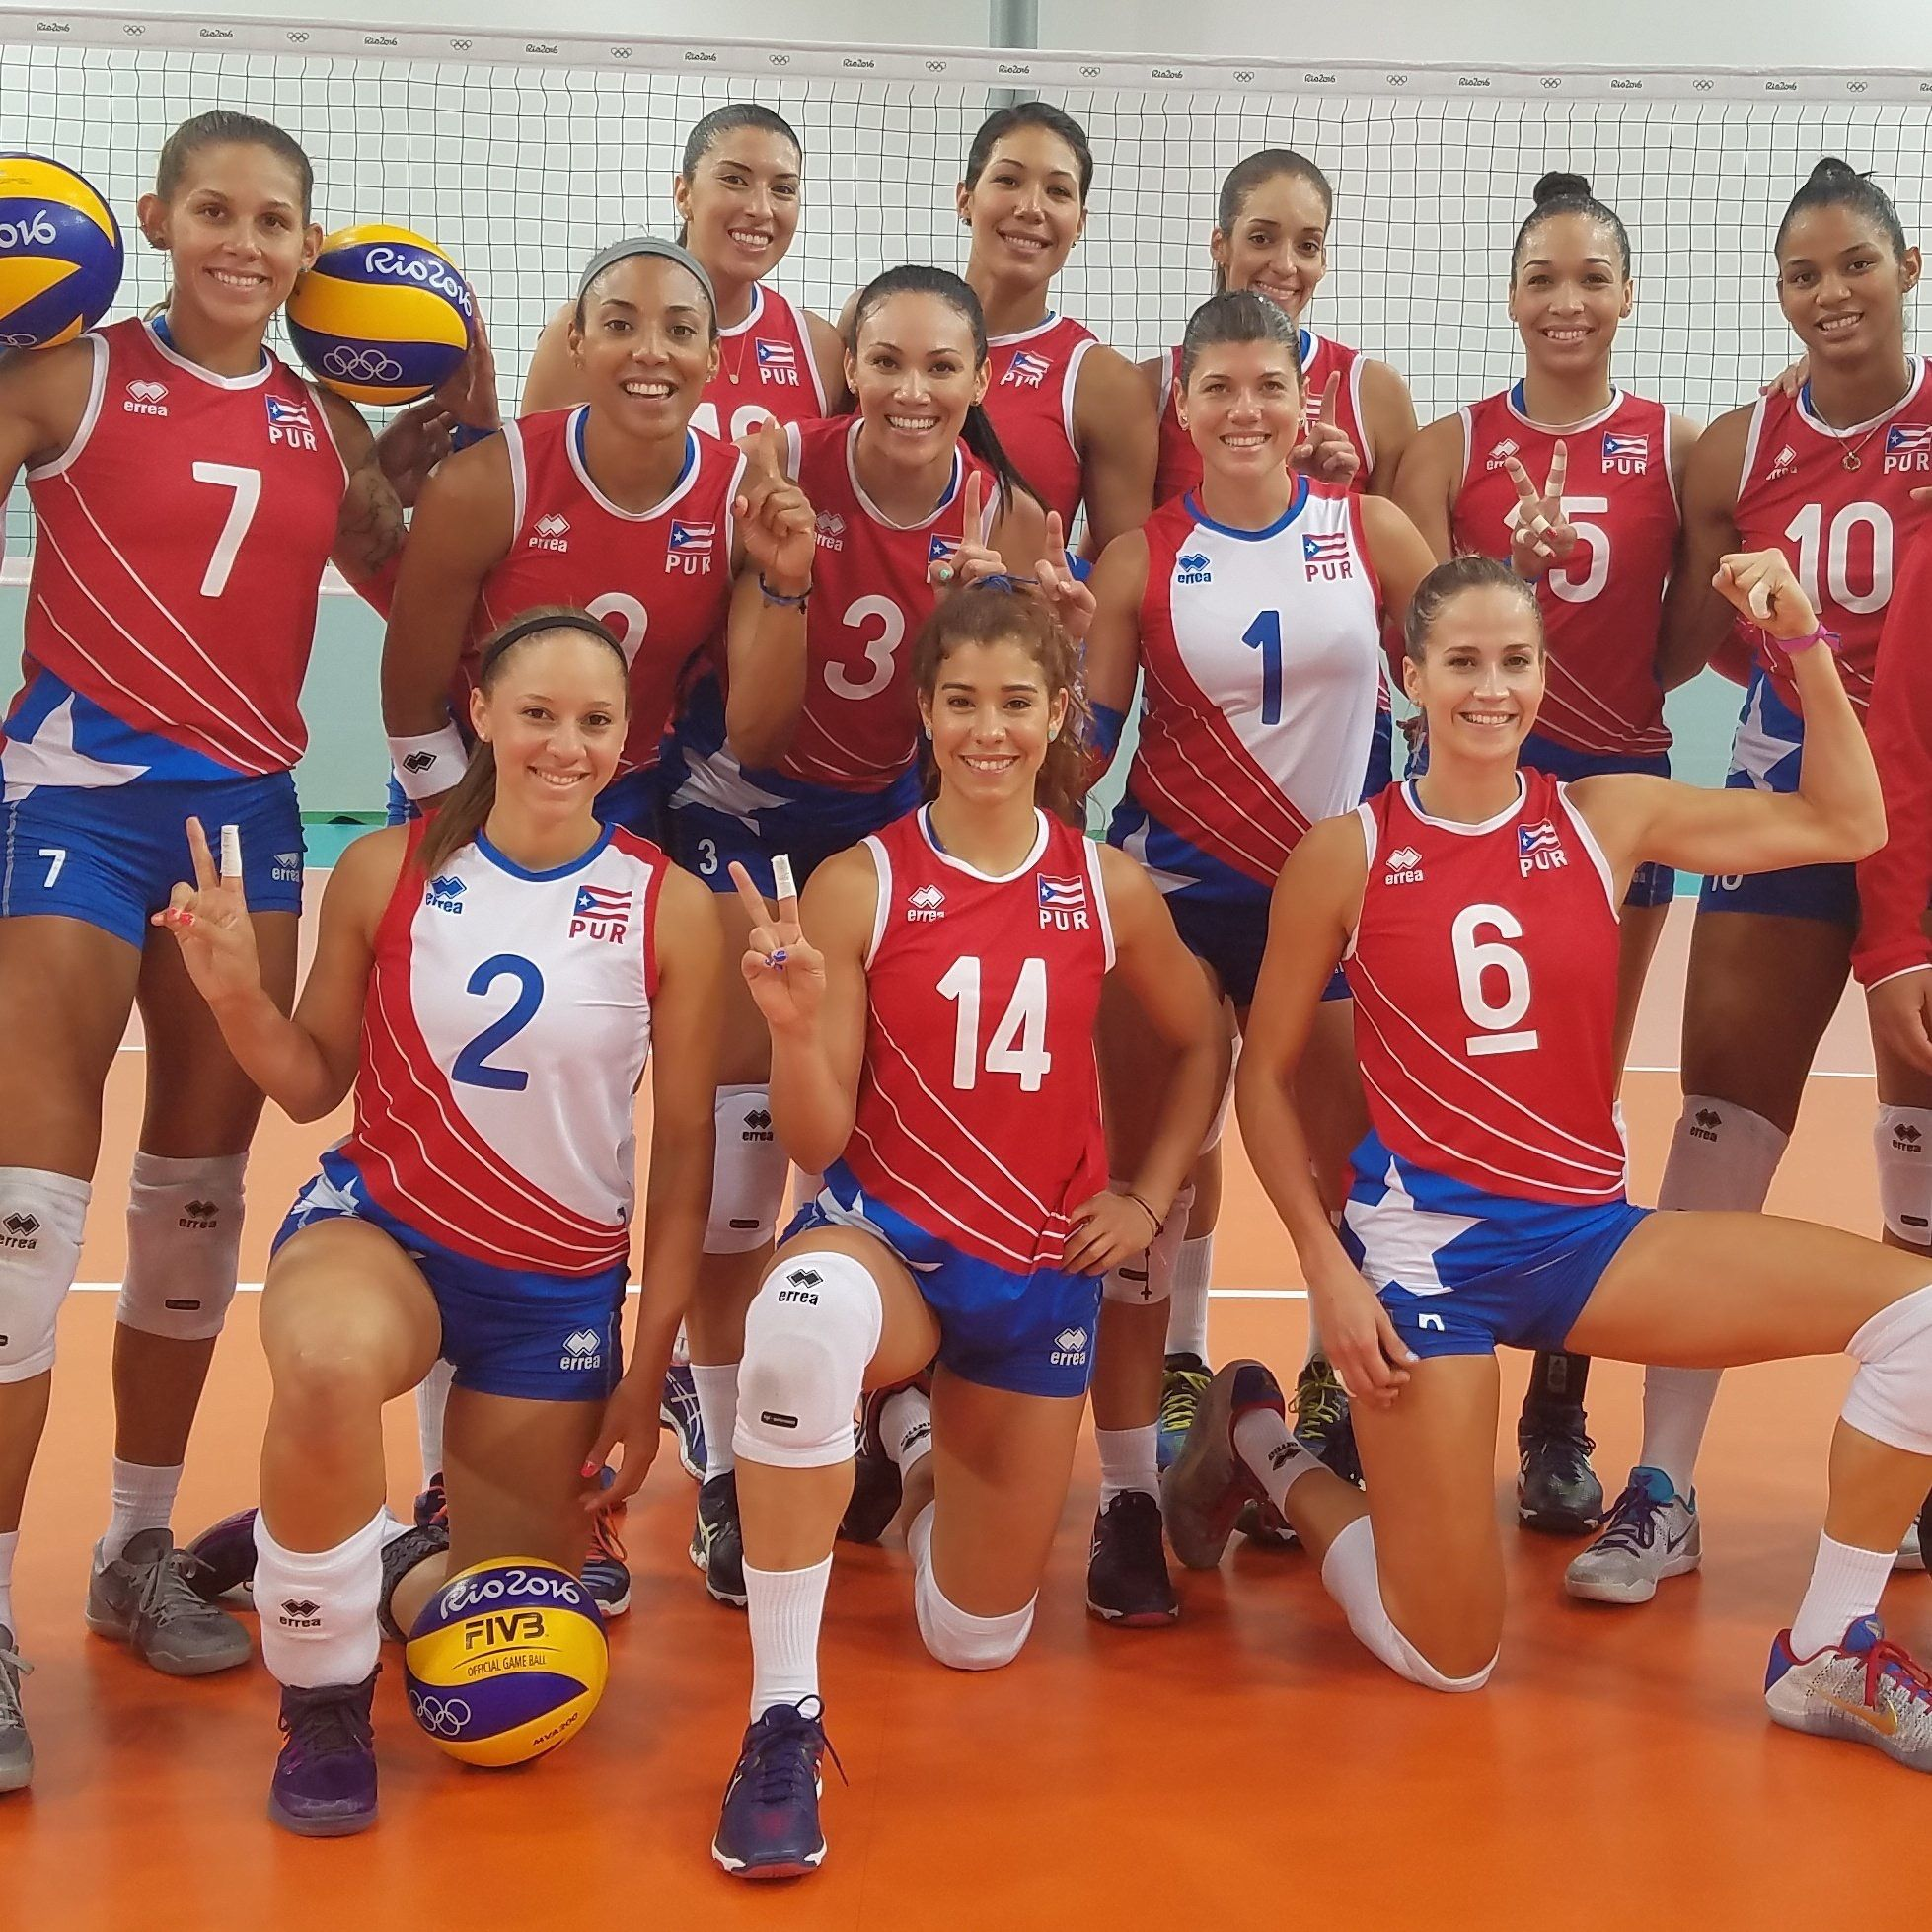 Puerto Rico Volleyball Team Female Volleyball Players Volleyball Team Volleyball Players